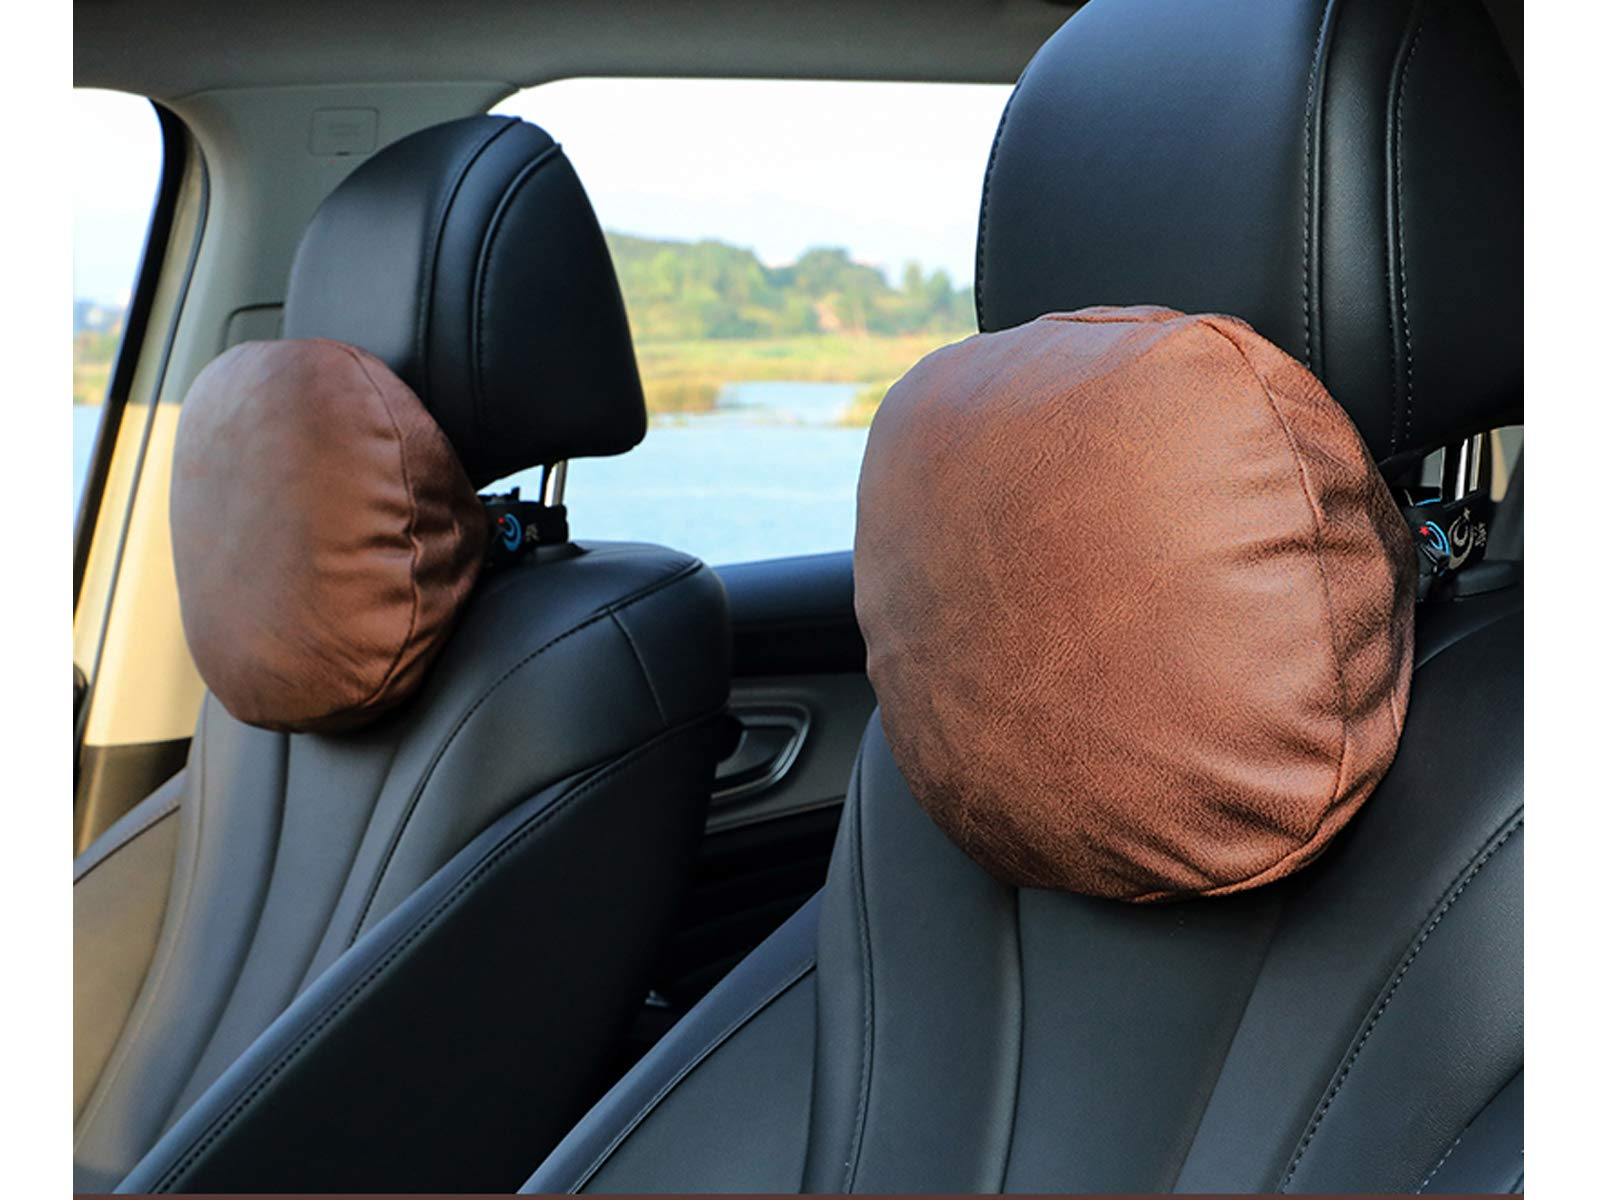 PAMIR TONG Car Seat Neck Pillow, Headrest Cushion for Neck Pain Relief&Cervical Support, Travel Neck Pillow Sleeping Seat Rest Pillow (Brown)